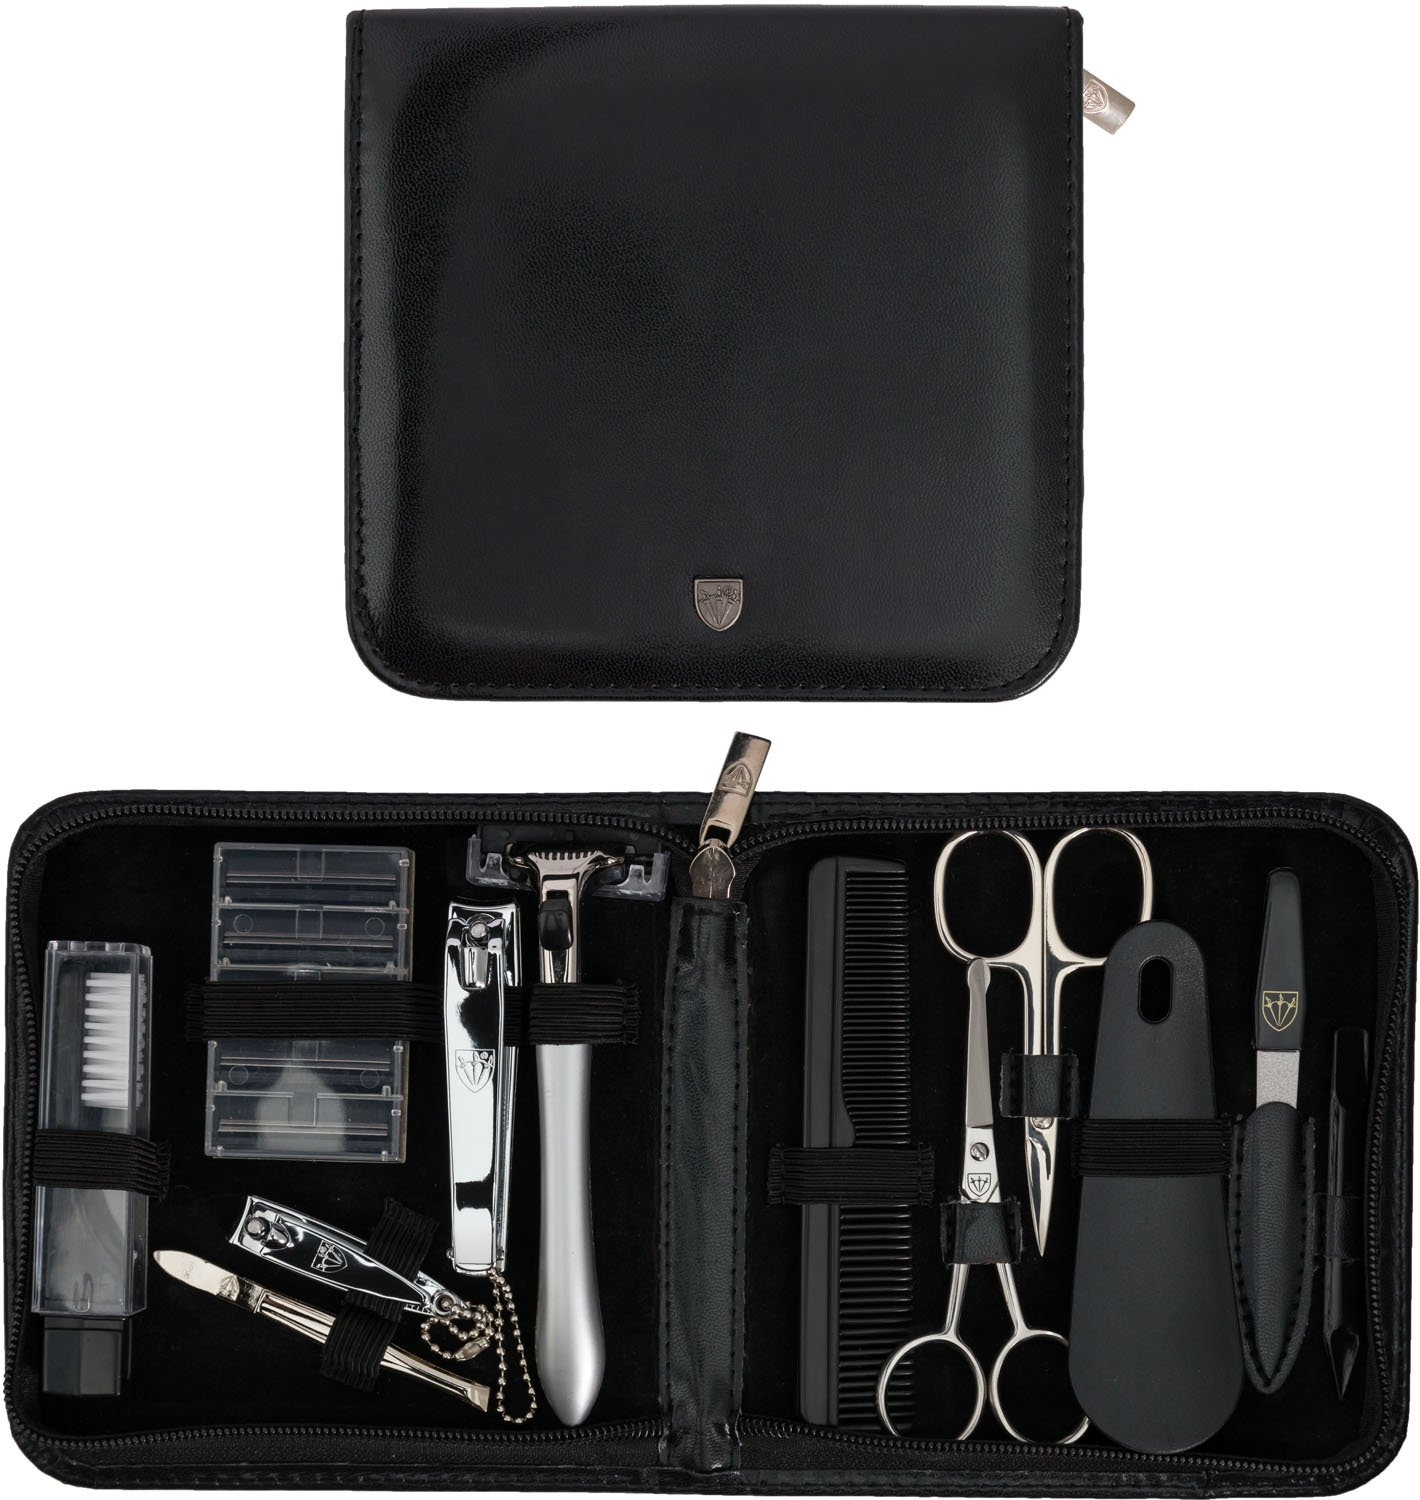 THREE SWORDS - Exclusive 12-Piece MANICURE - PEDICURE - GROOMING – NAIL CARE set / kit / case - basic-standard quality (633514)